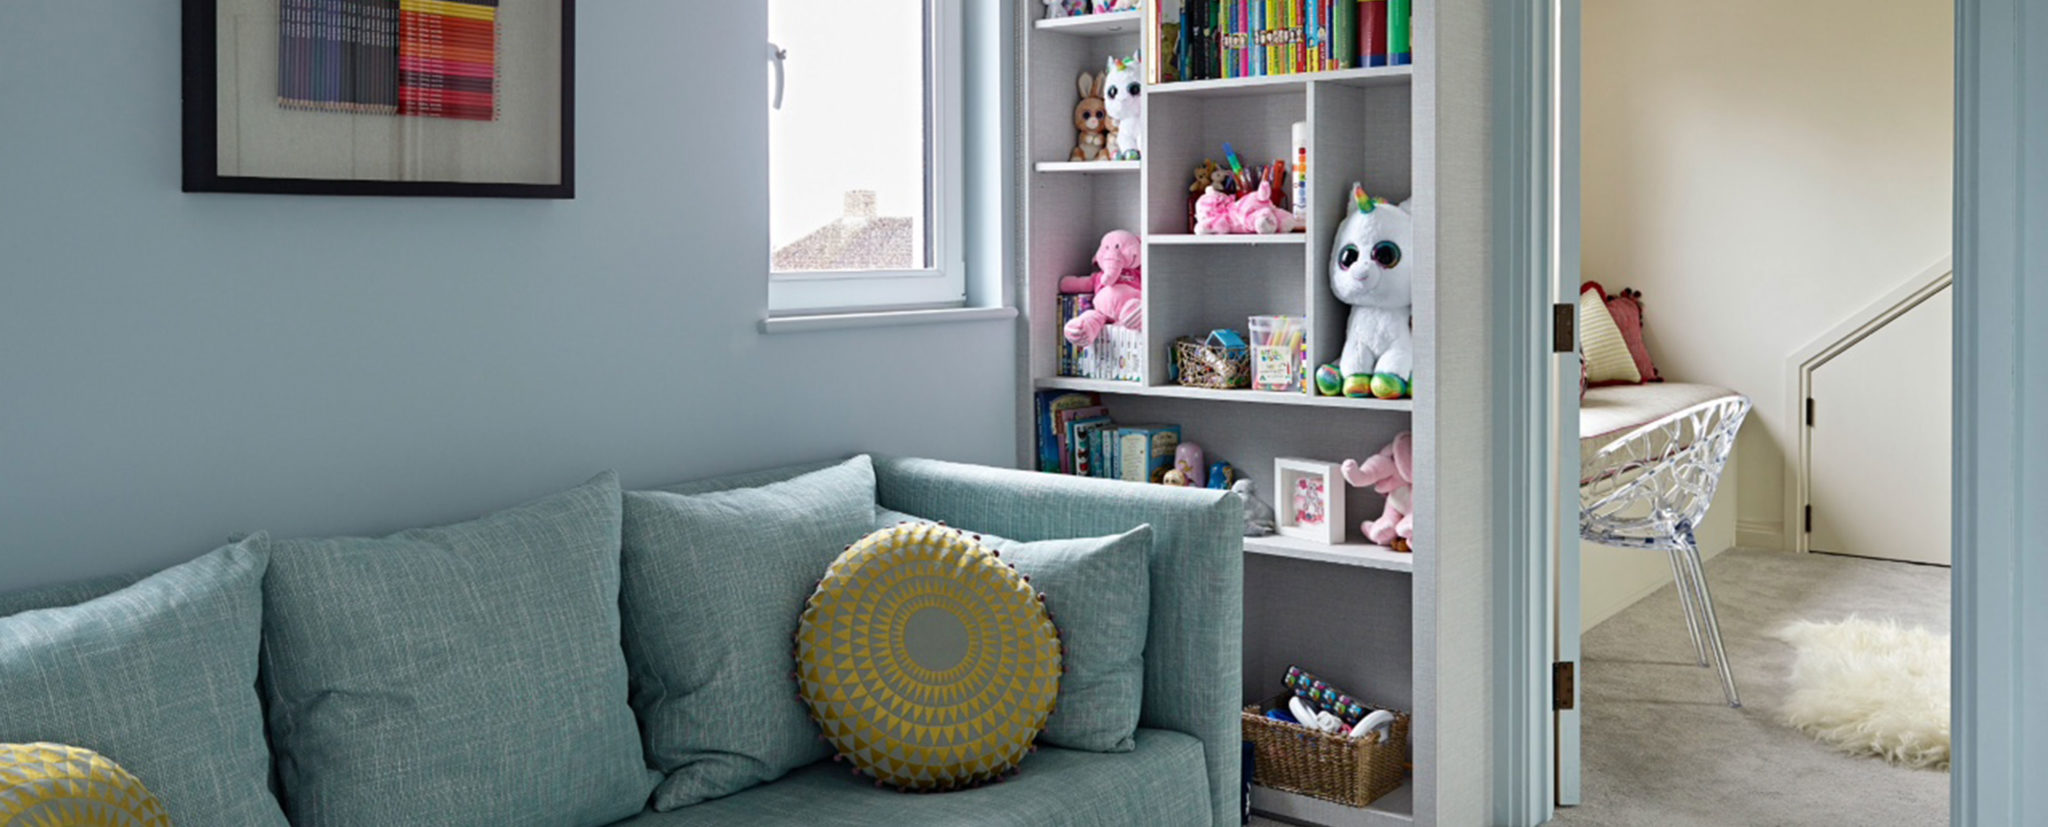 Bedroom display cabinet and reading nook/study area for Wimbledon family home